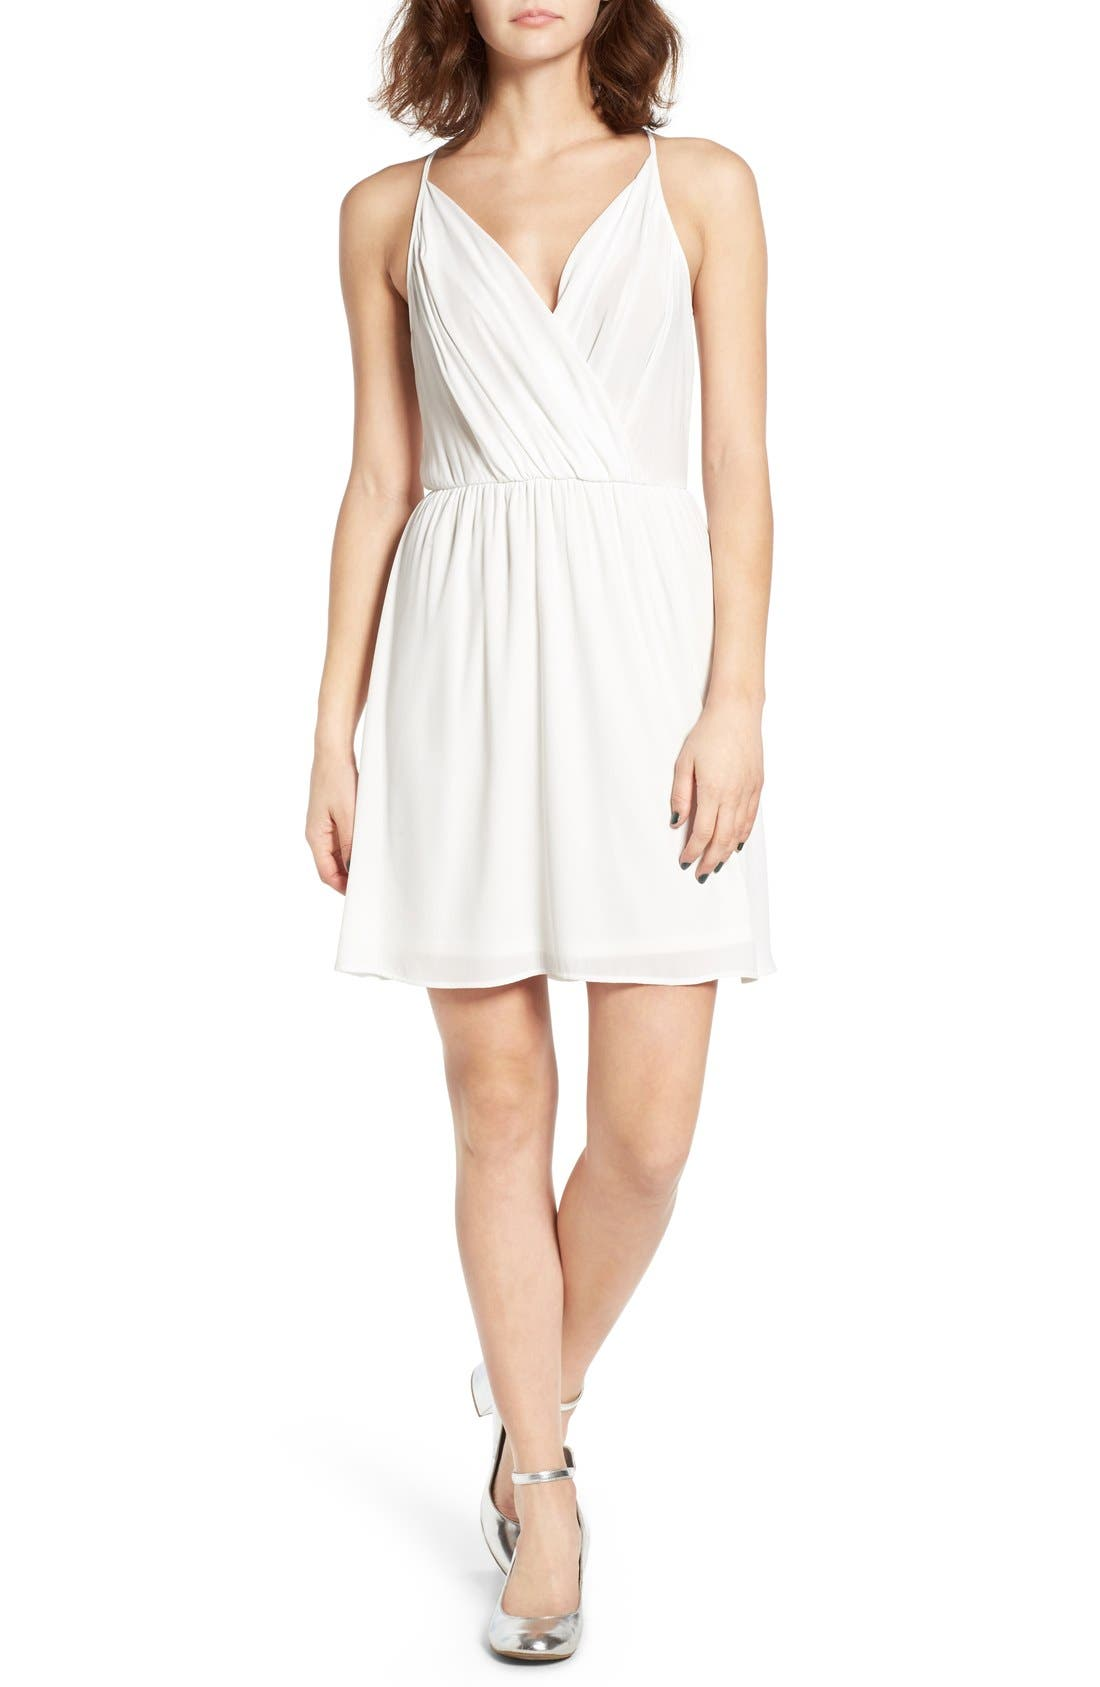 Main Image - Lush Surplice Camisole Dress